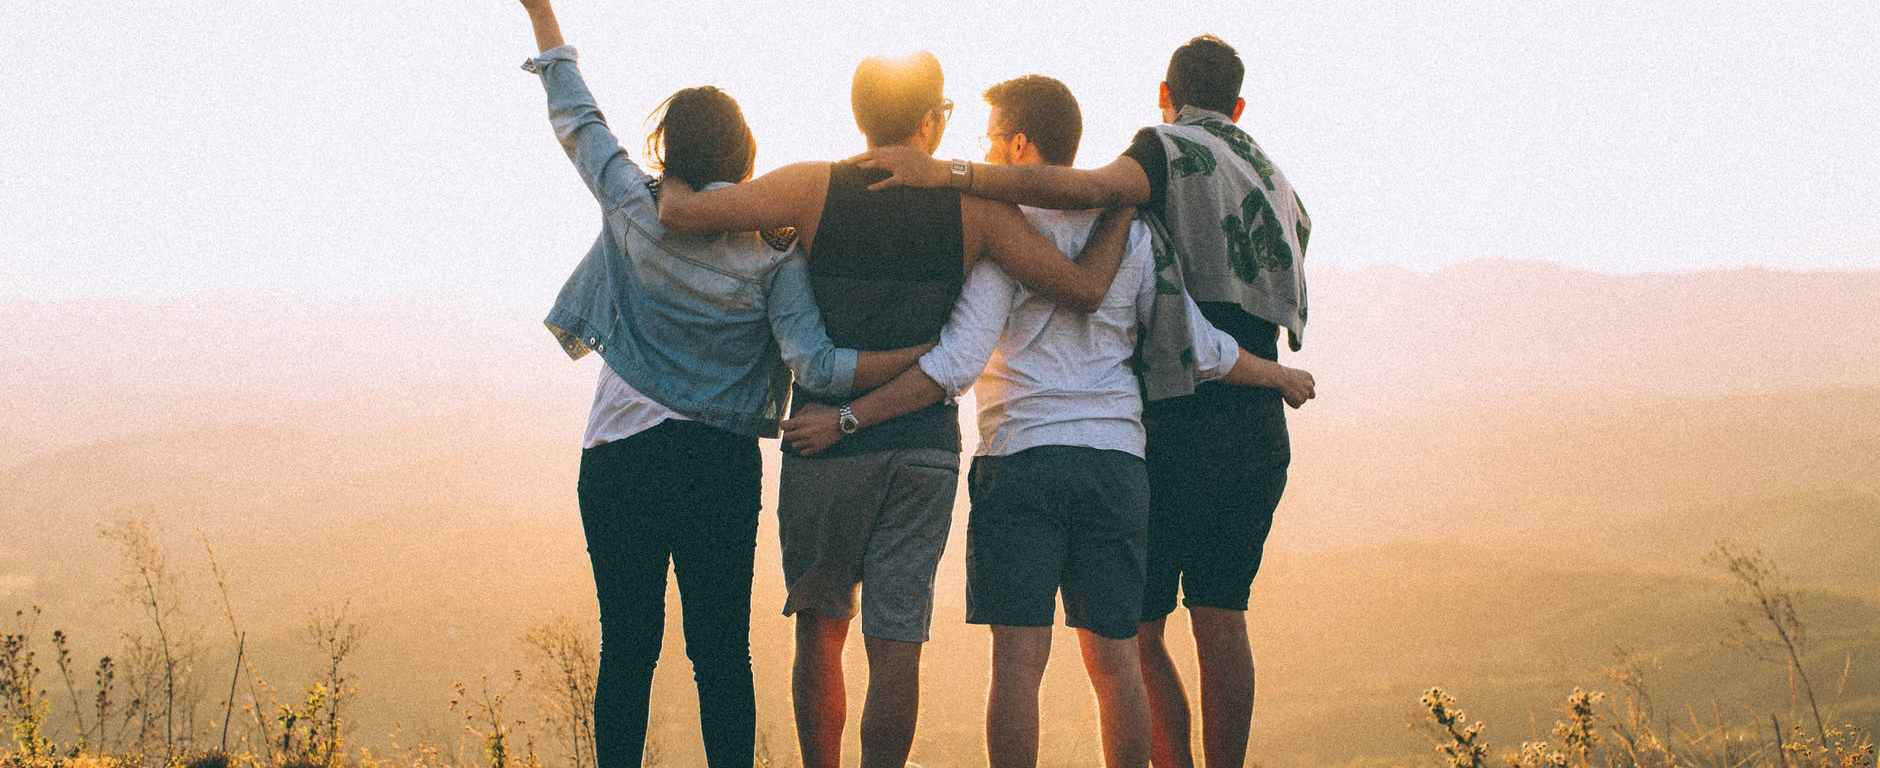 anonymous friends standing together at sunset in mountains